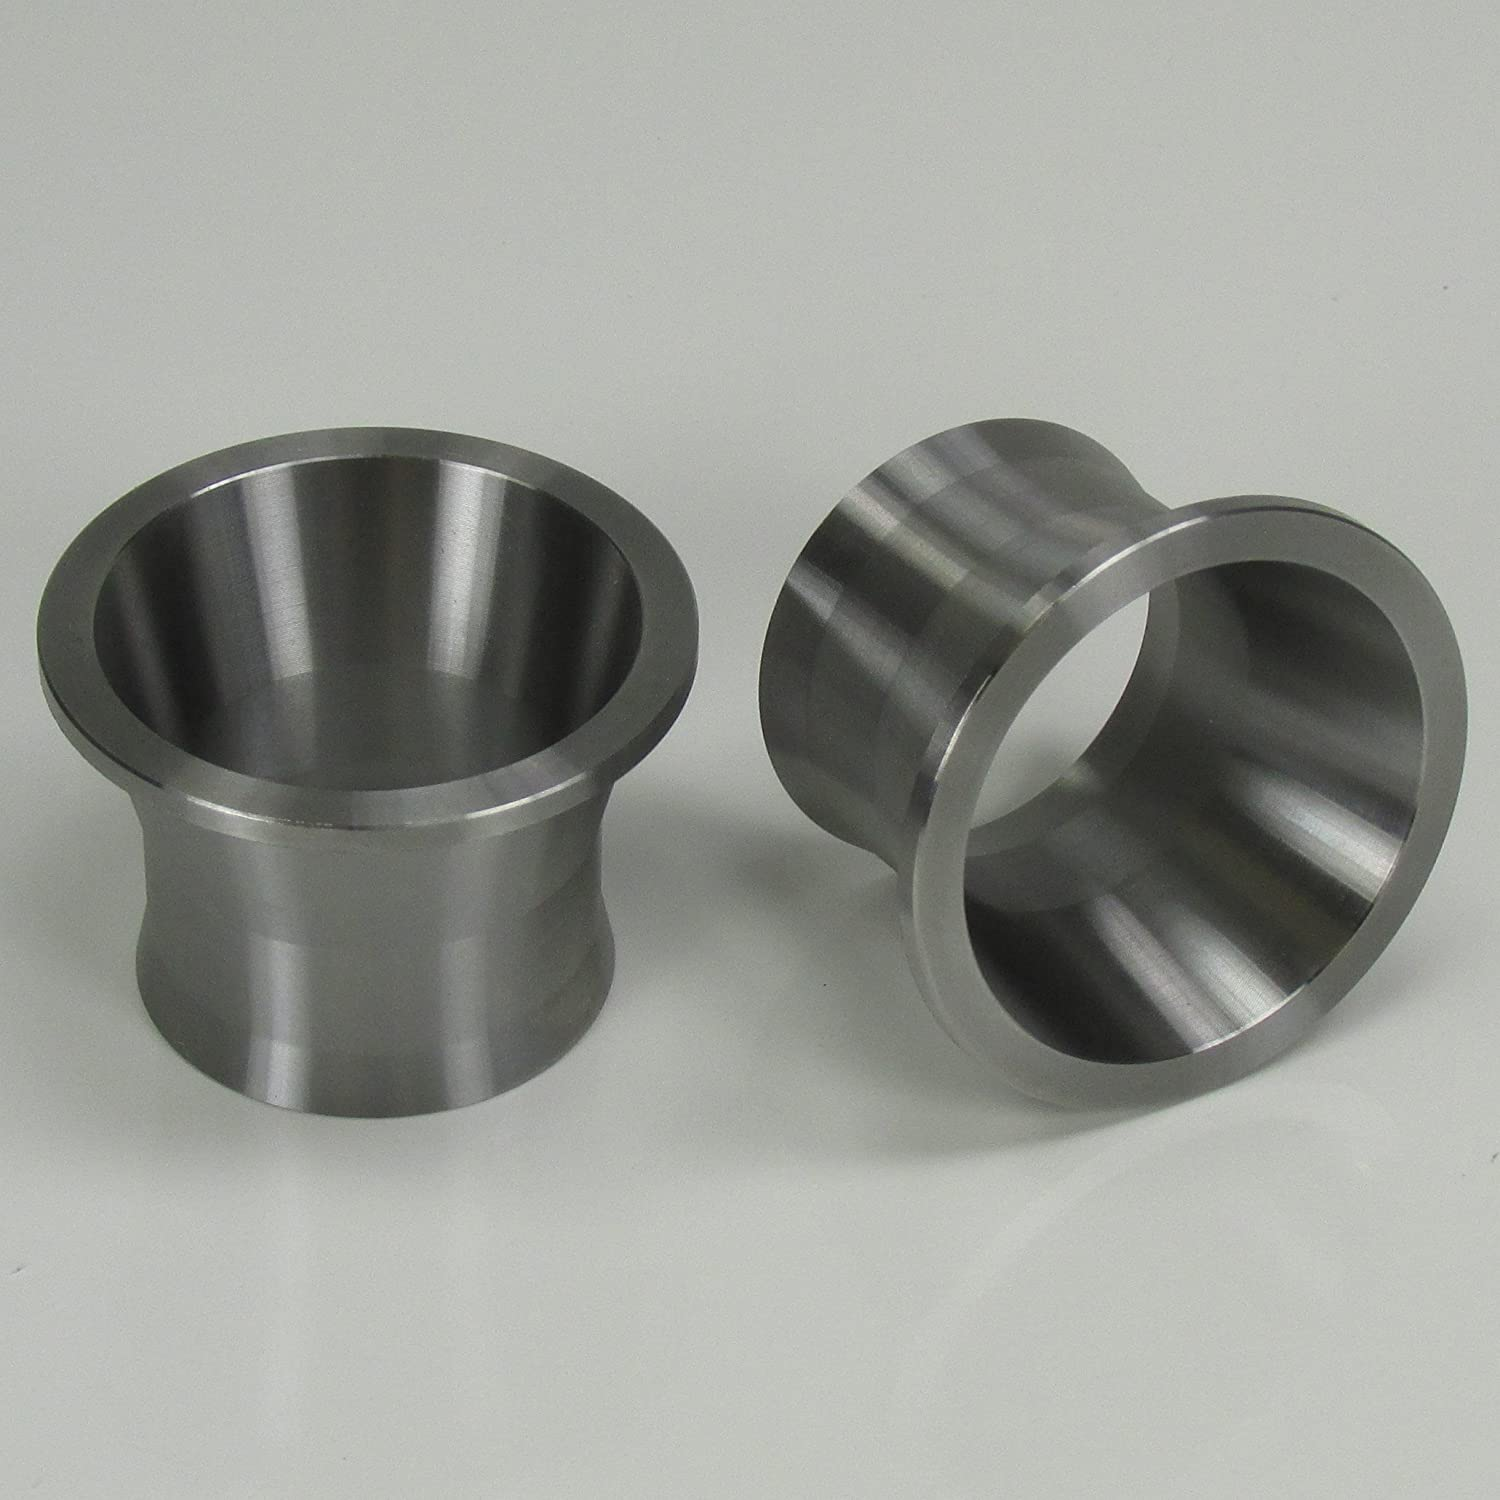 Exhaust Port Torque Cones for 1966-1984 Harley Shovelheads Increases Power and Reduces Reversion on Unbaffled Exhaust Systems 66//84